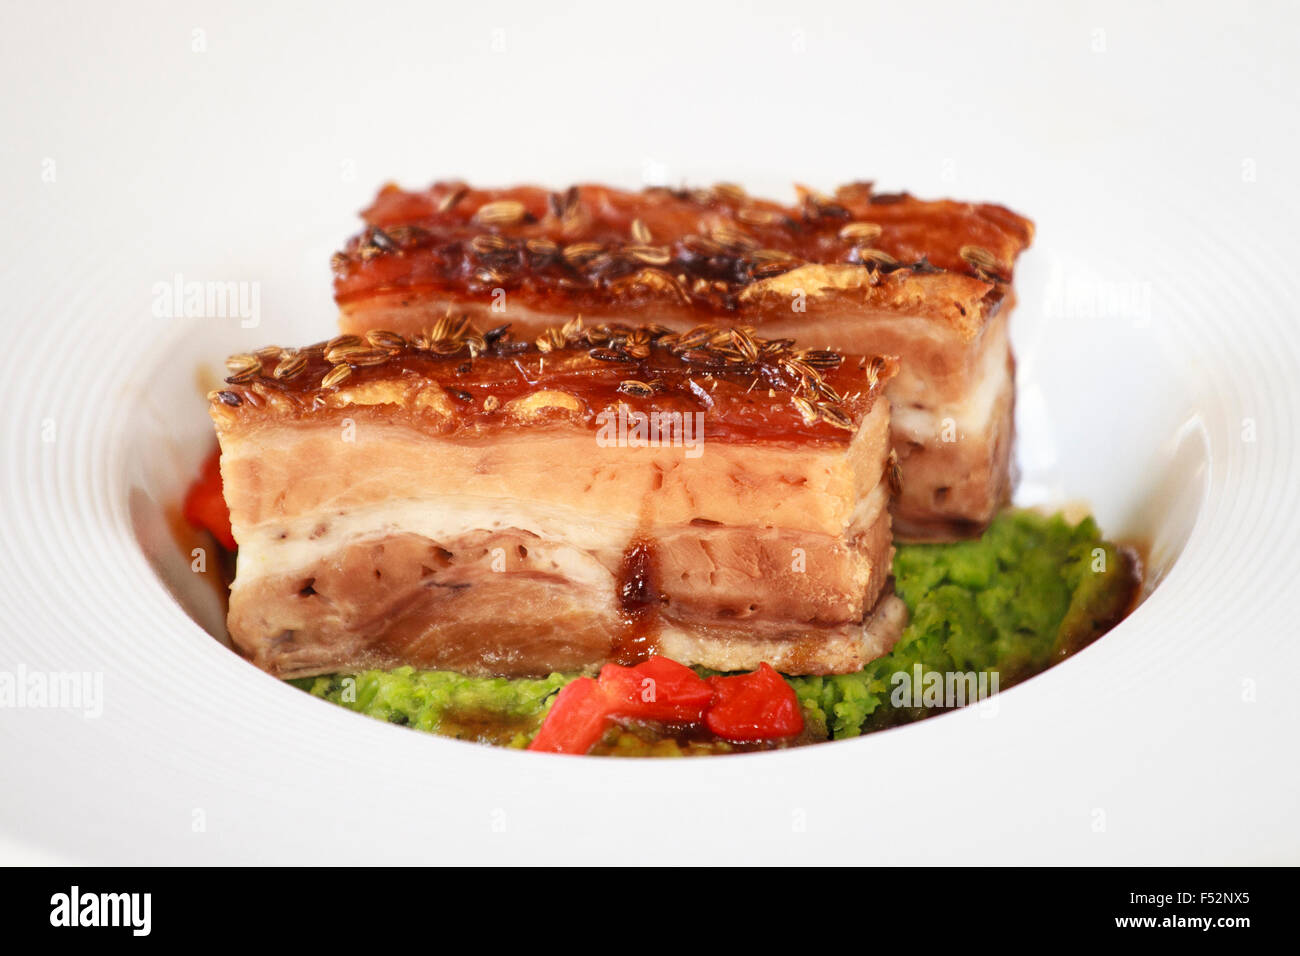 Spiced pork belly with Crushed peas & smoked red peppers - Stock Image